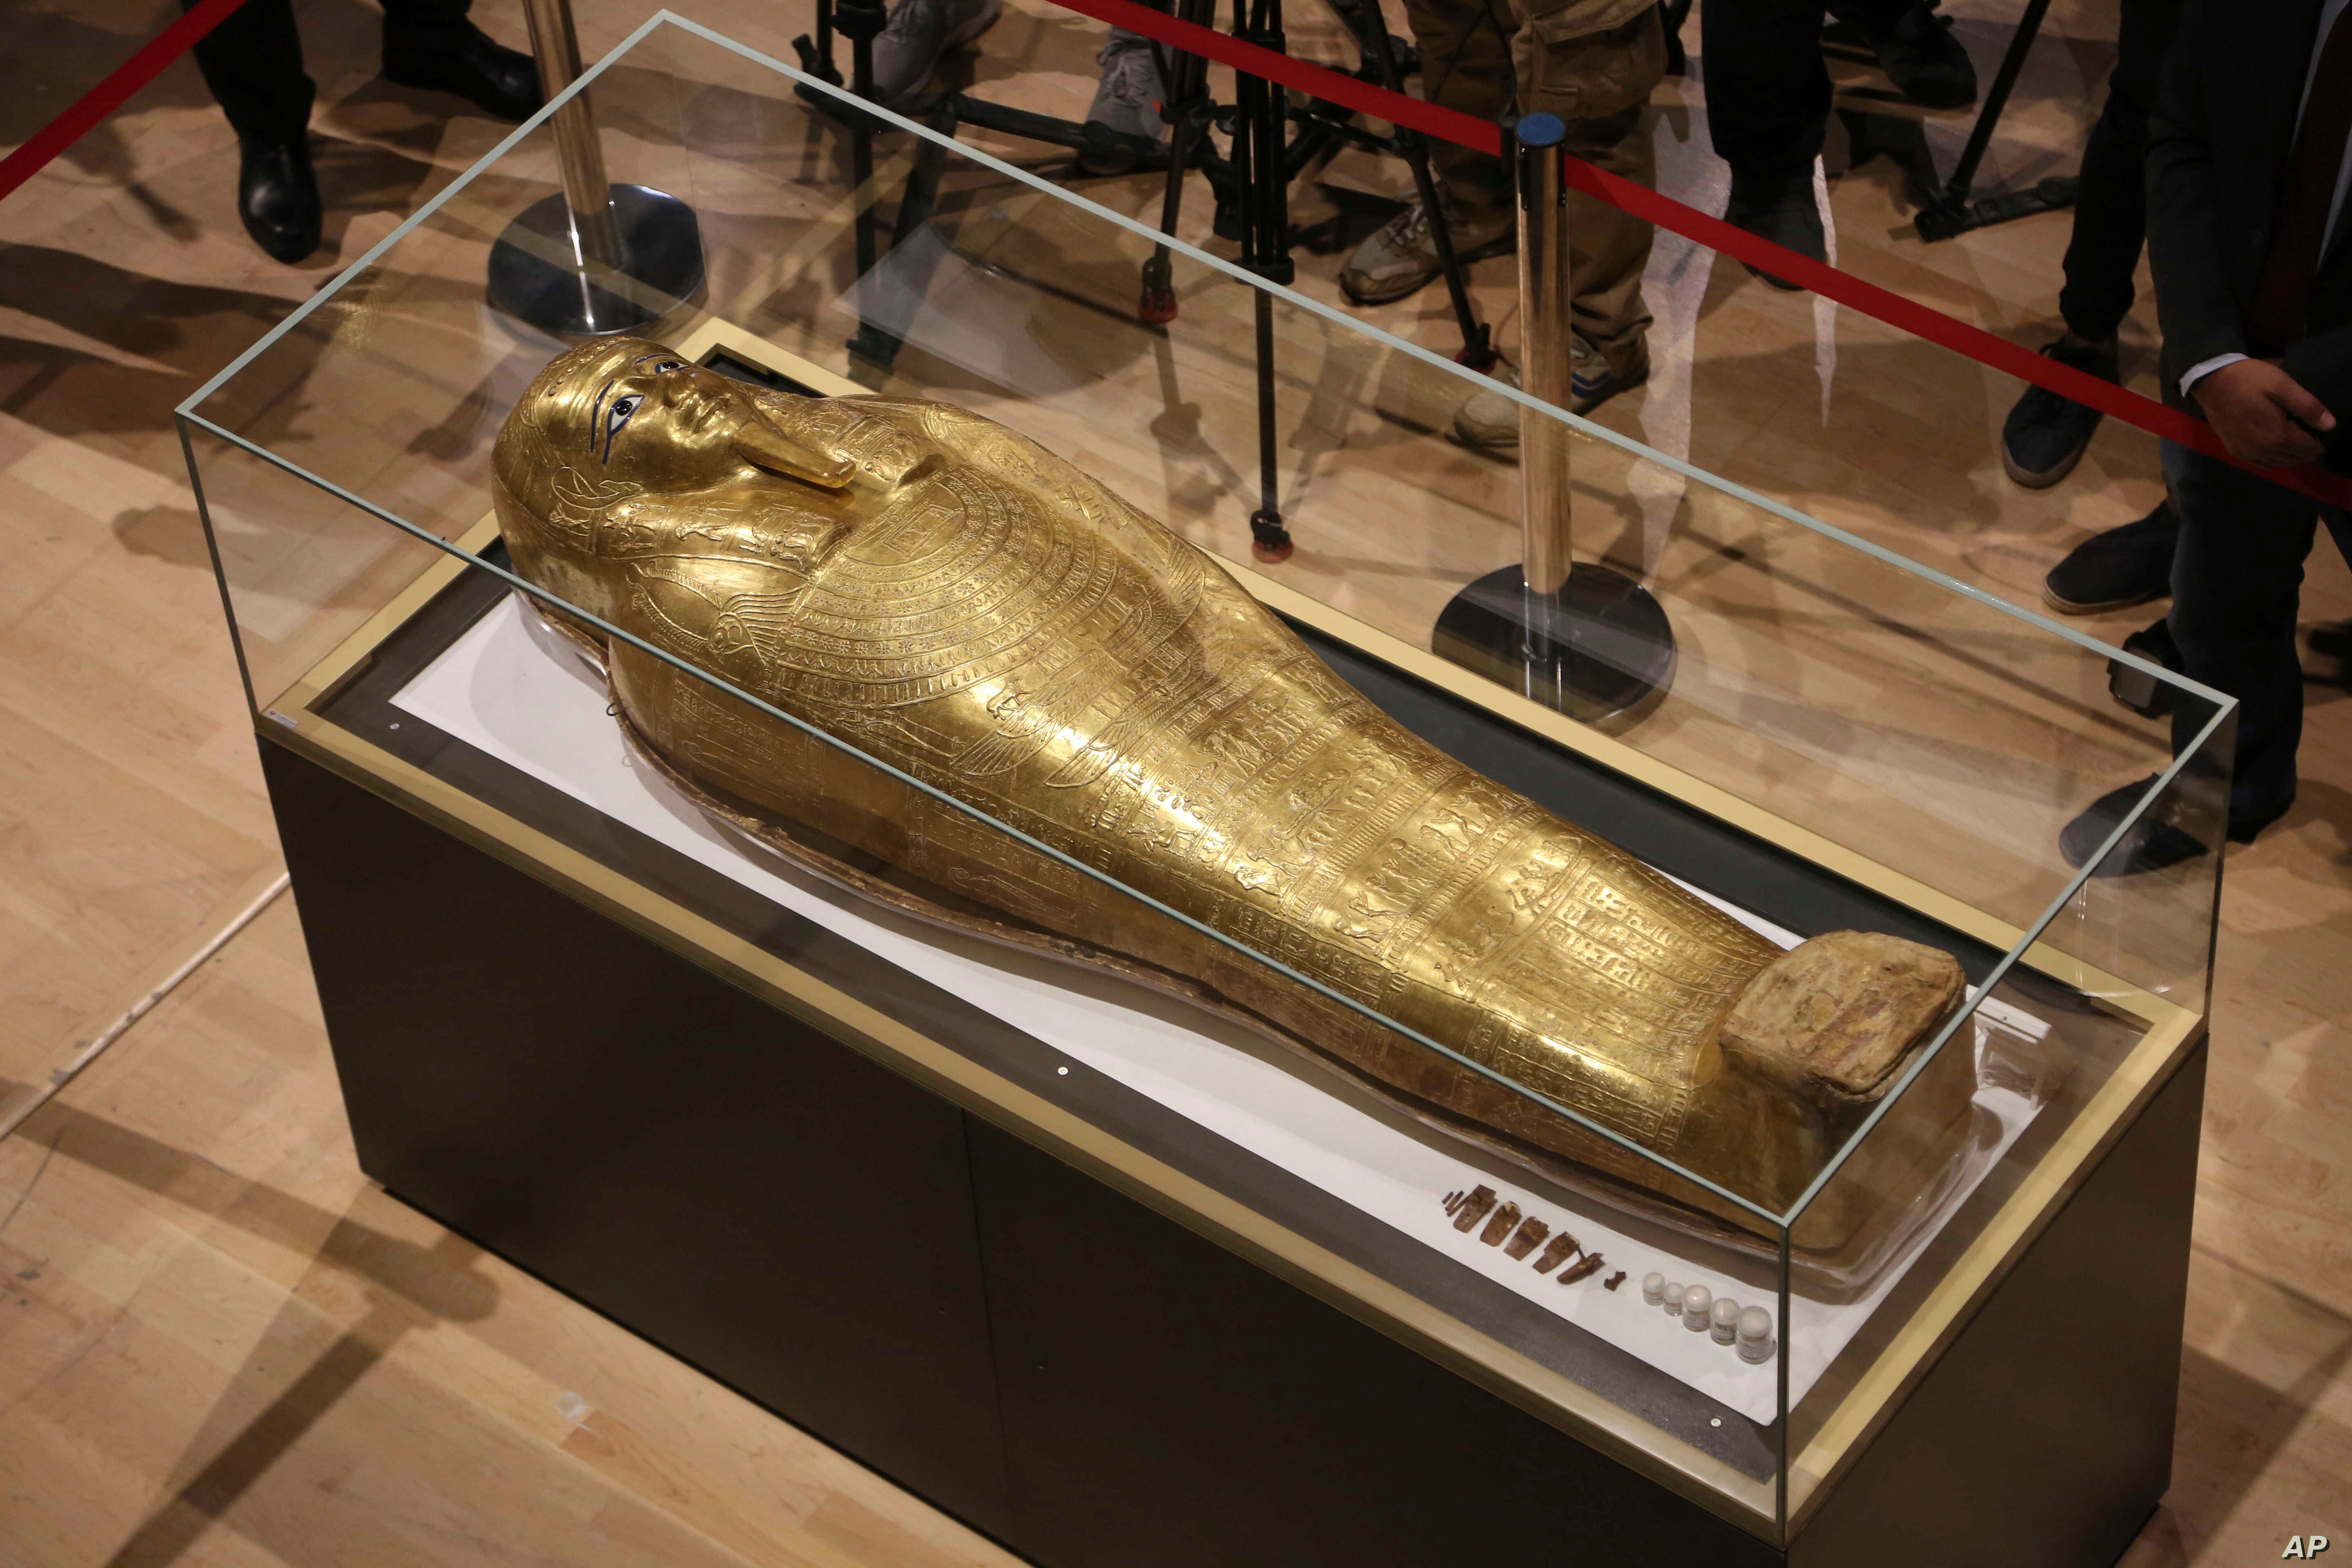 Journalists gather around the golden coffin that once held the mummy of Nedjemankh, a priest in the Ptolemaic Period some 2,000 years ago, at the National Museum of Egyptian Civilization, in Old Cairo, Egypt, Oct. 1, 2019.